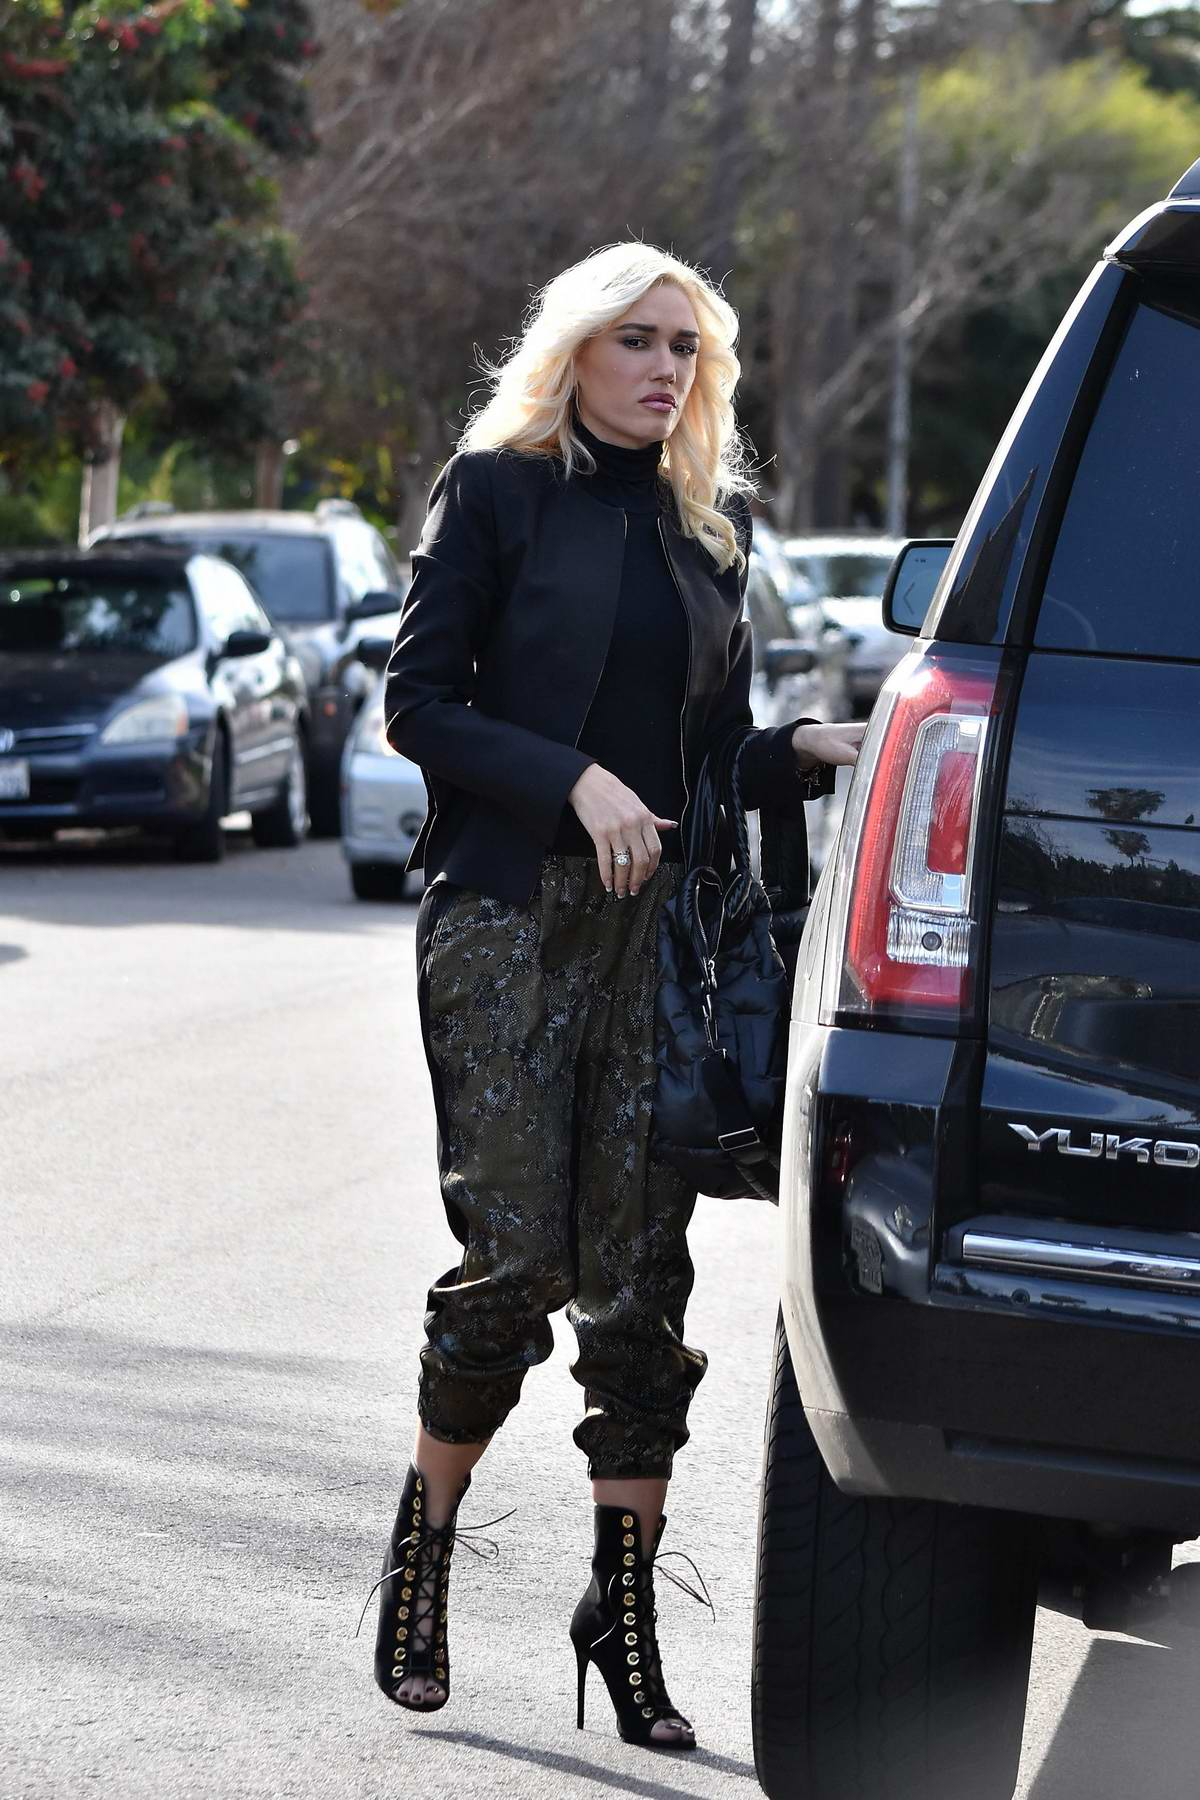 Gwen Stefani takes her kids to the Church in Los Angeles